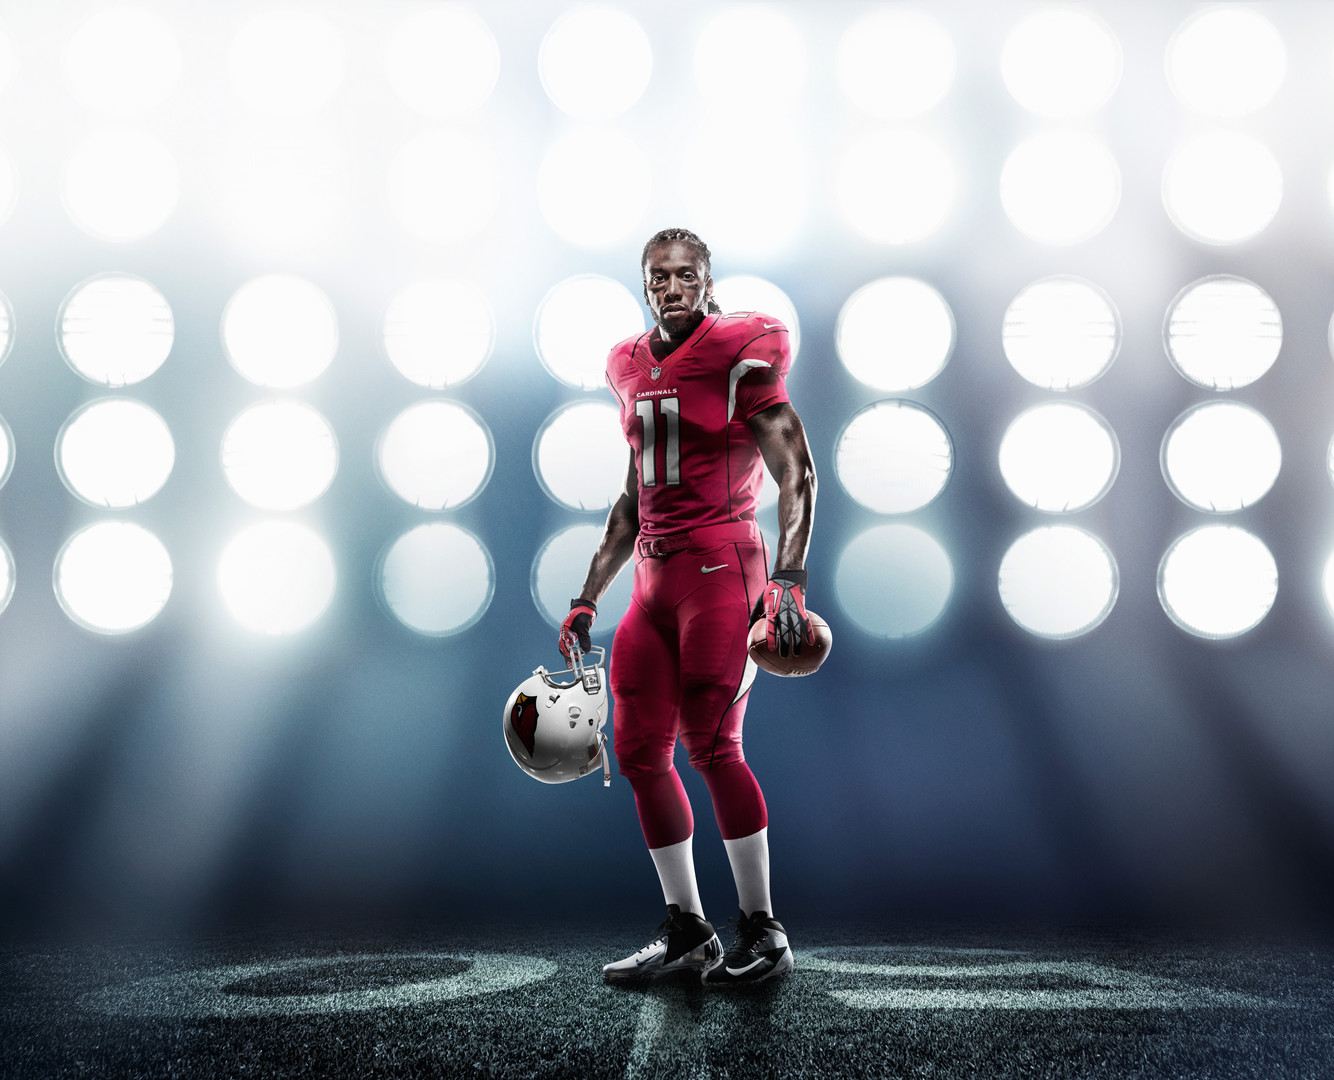 SU12_AT_FITZGERALD_NFL_Cardinals Uniform